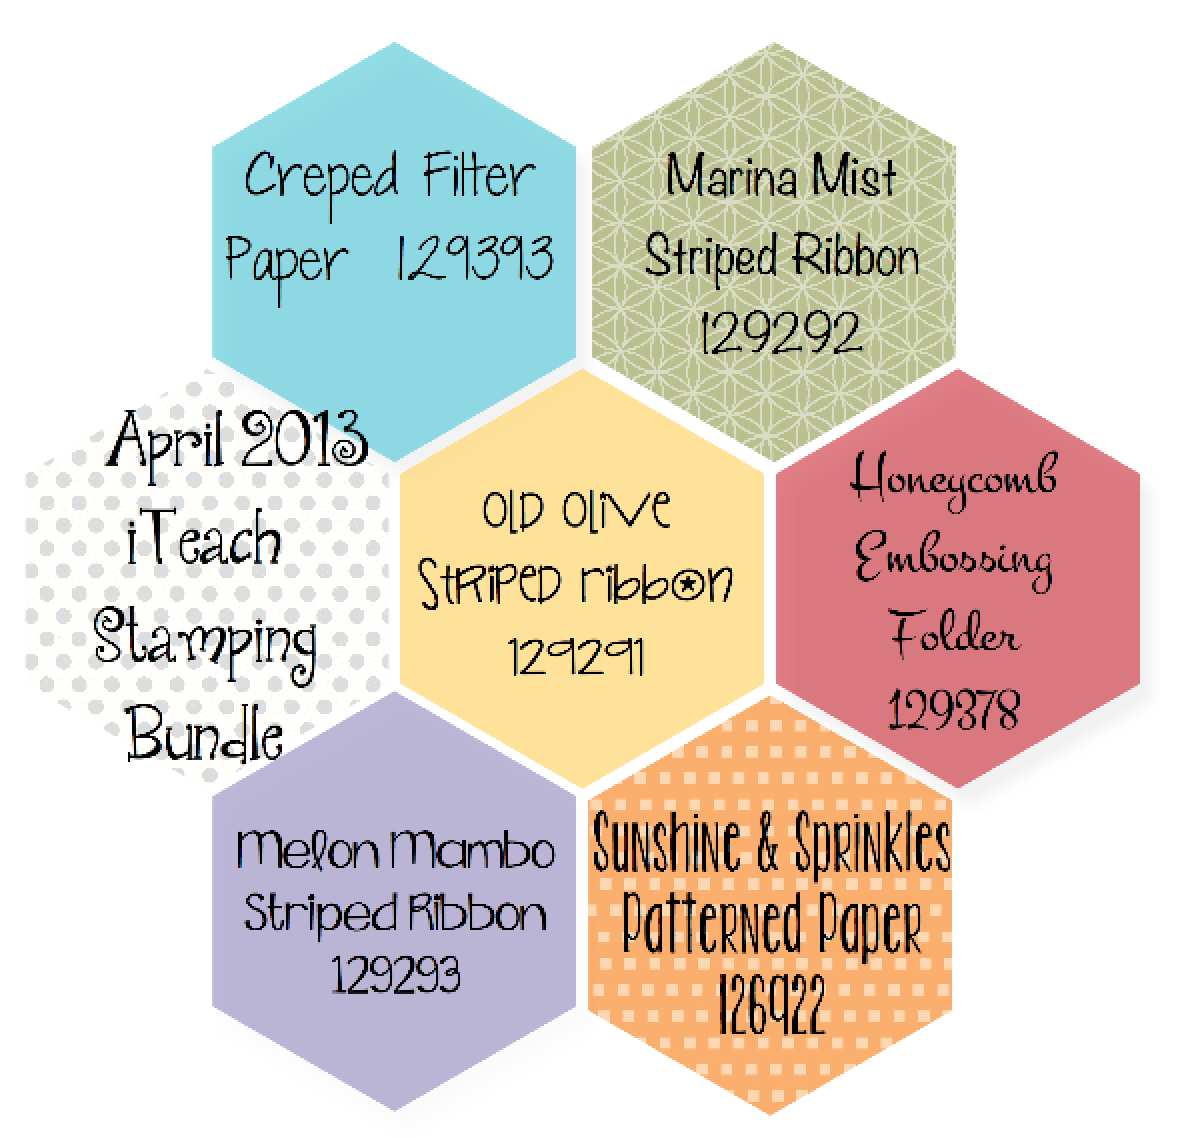 April 2013 iTeach Stamping Bundle